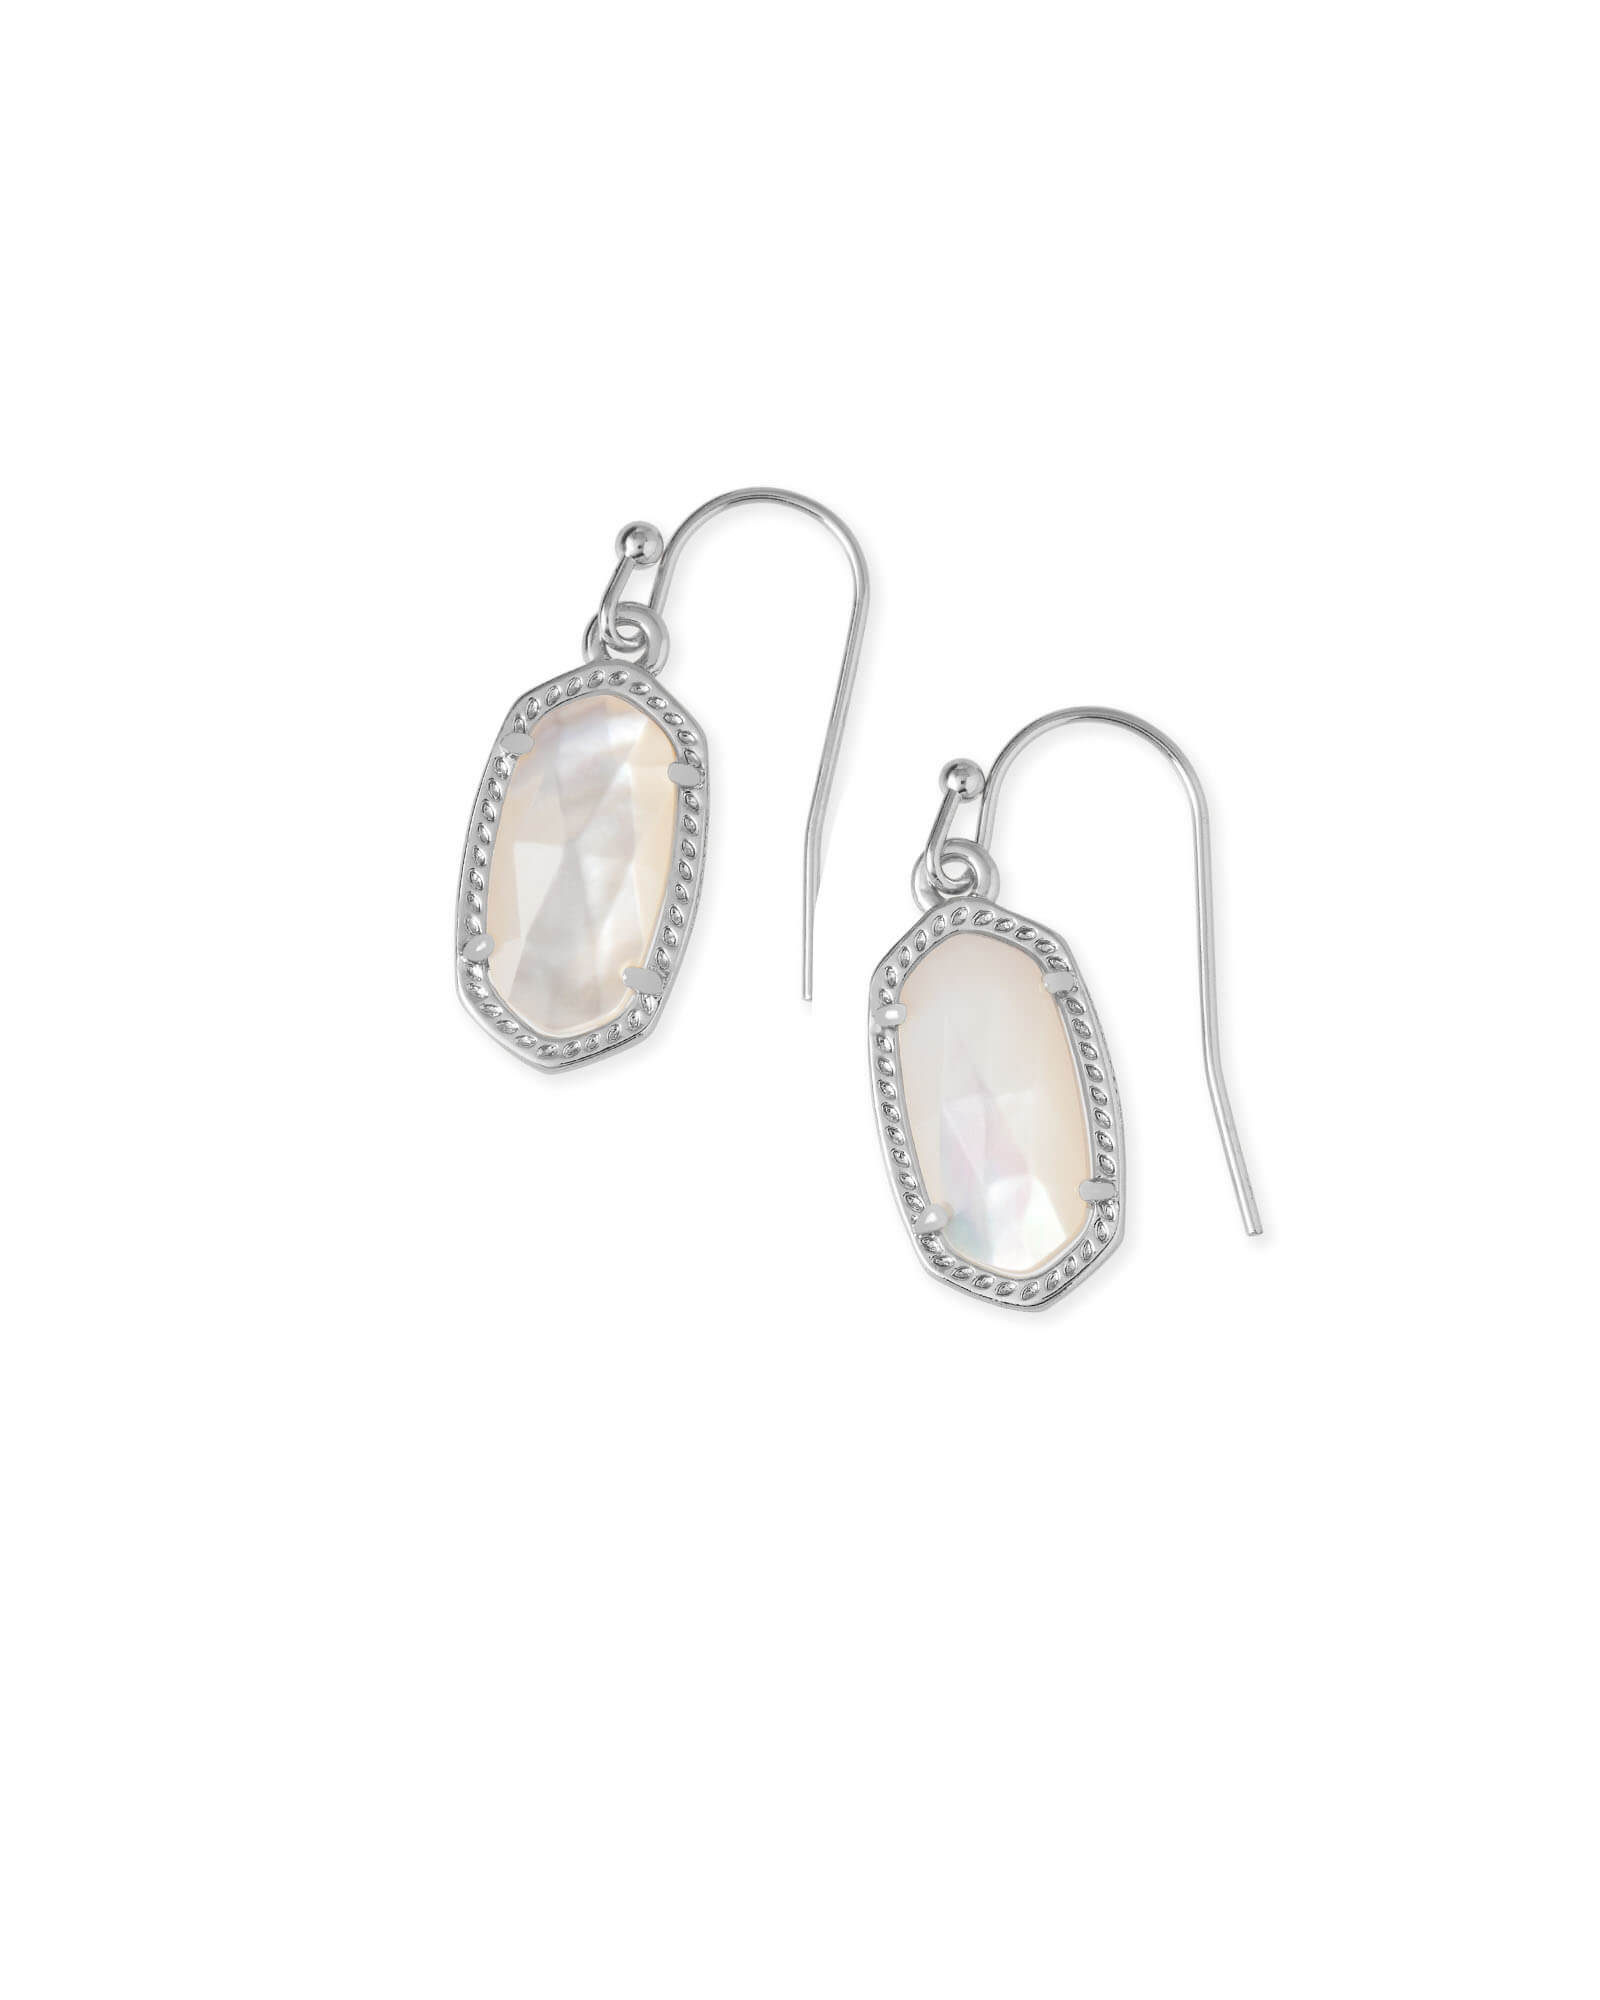 Lee Silver Drop Earrings in Ivory Pearl